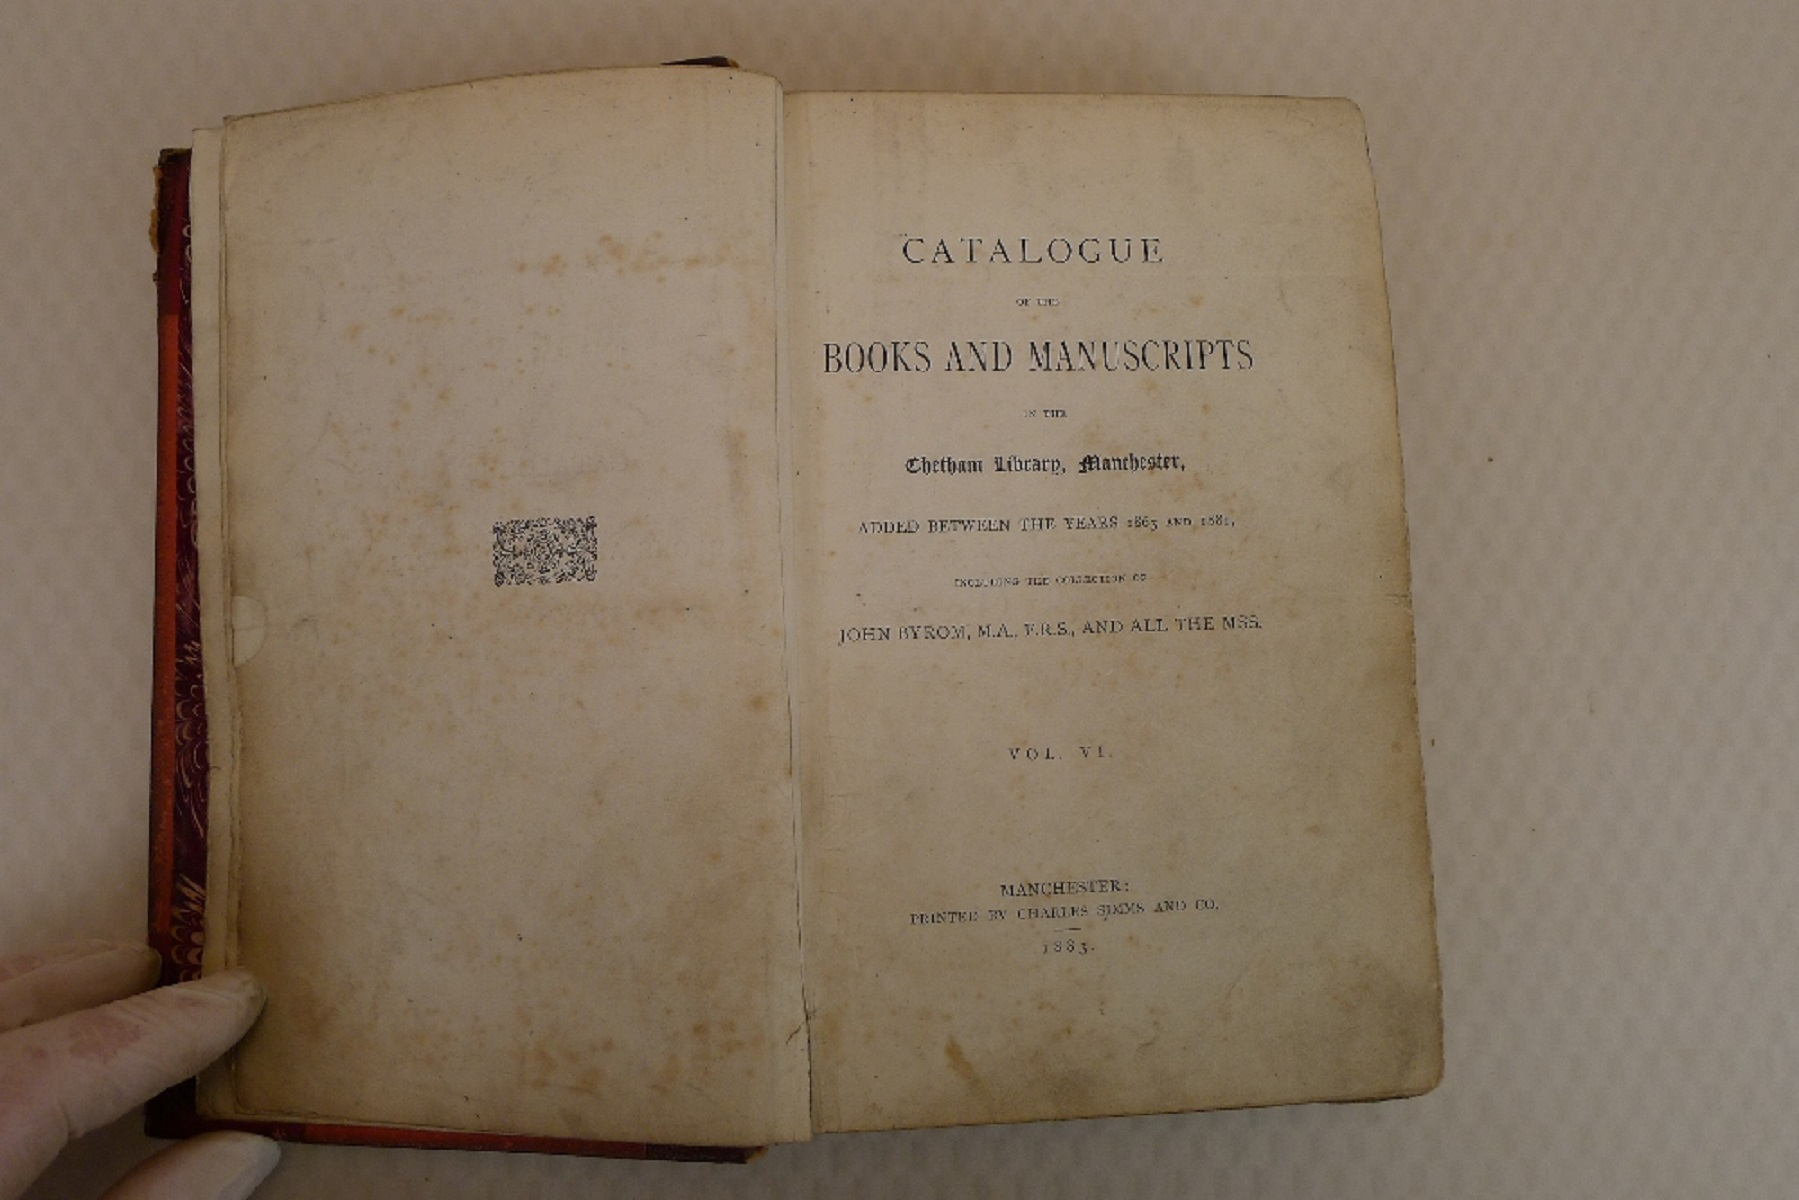 Volumes 1, 2, 3 and 6 of Bibliotheca Chethamensis (Catalogues of Books and Manuscripts) for the - Image 19 of 19